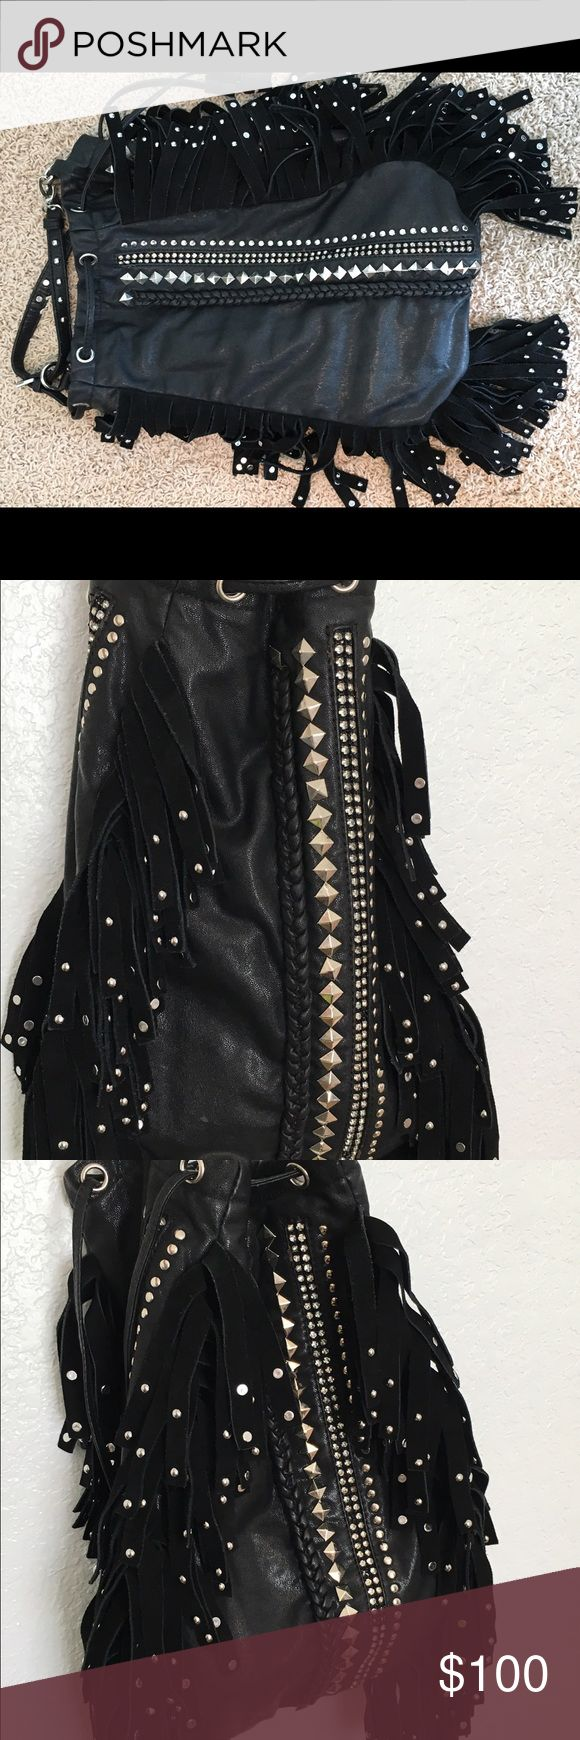 Tassel leather studded bucket purse Real leather black studded awesome bag! I found this gem at a fancy store at the Vegas airport one year! leather Bags Hobos